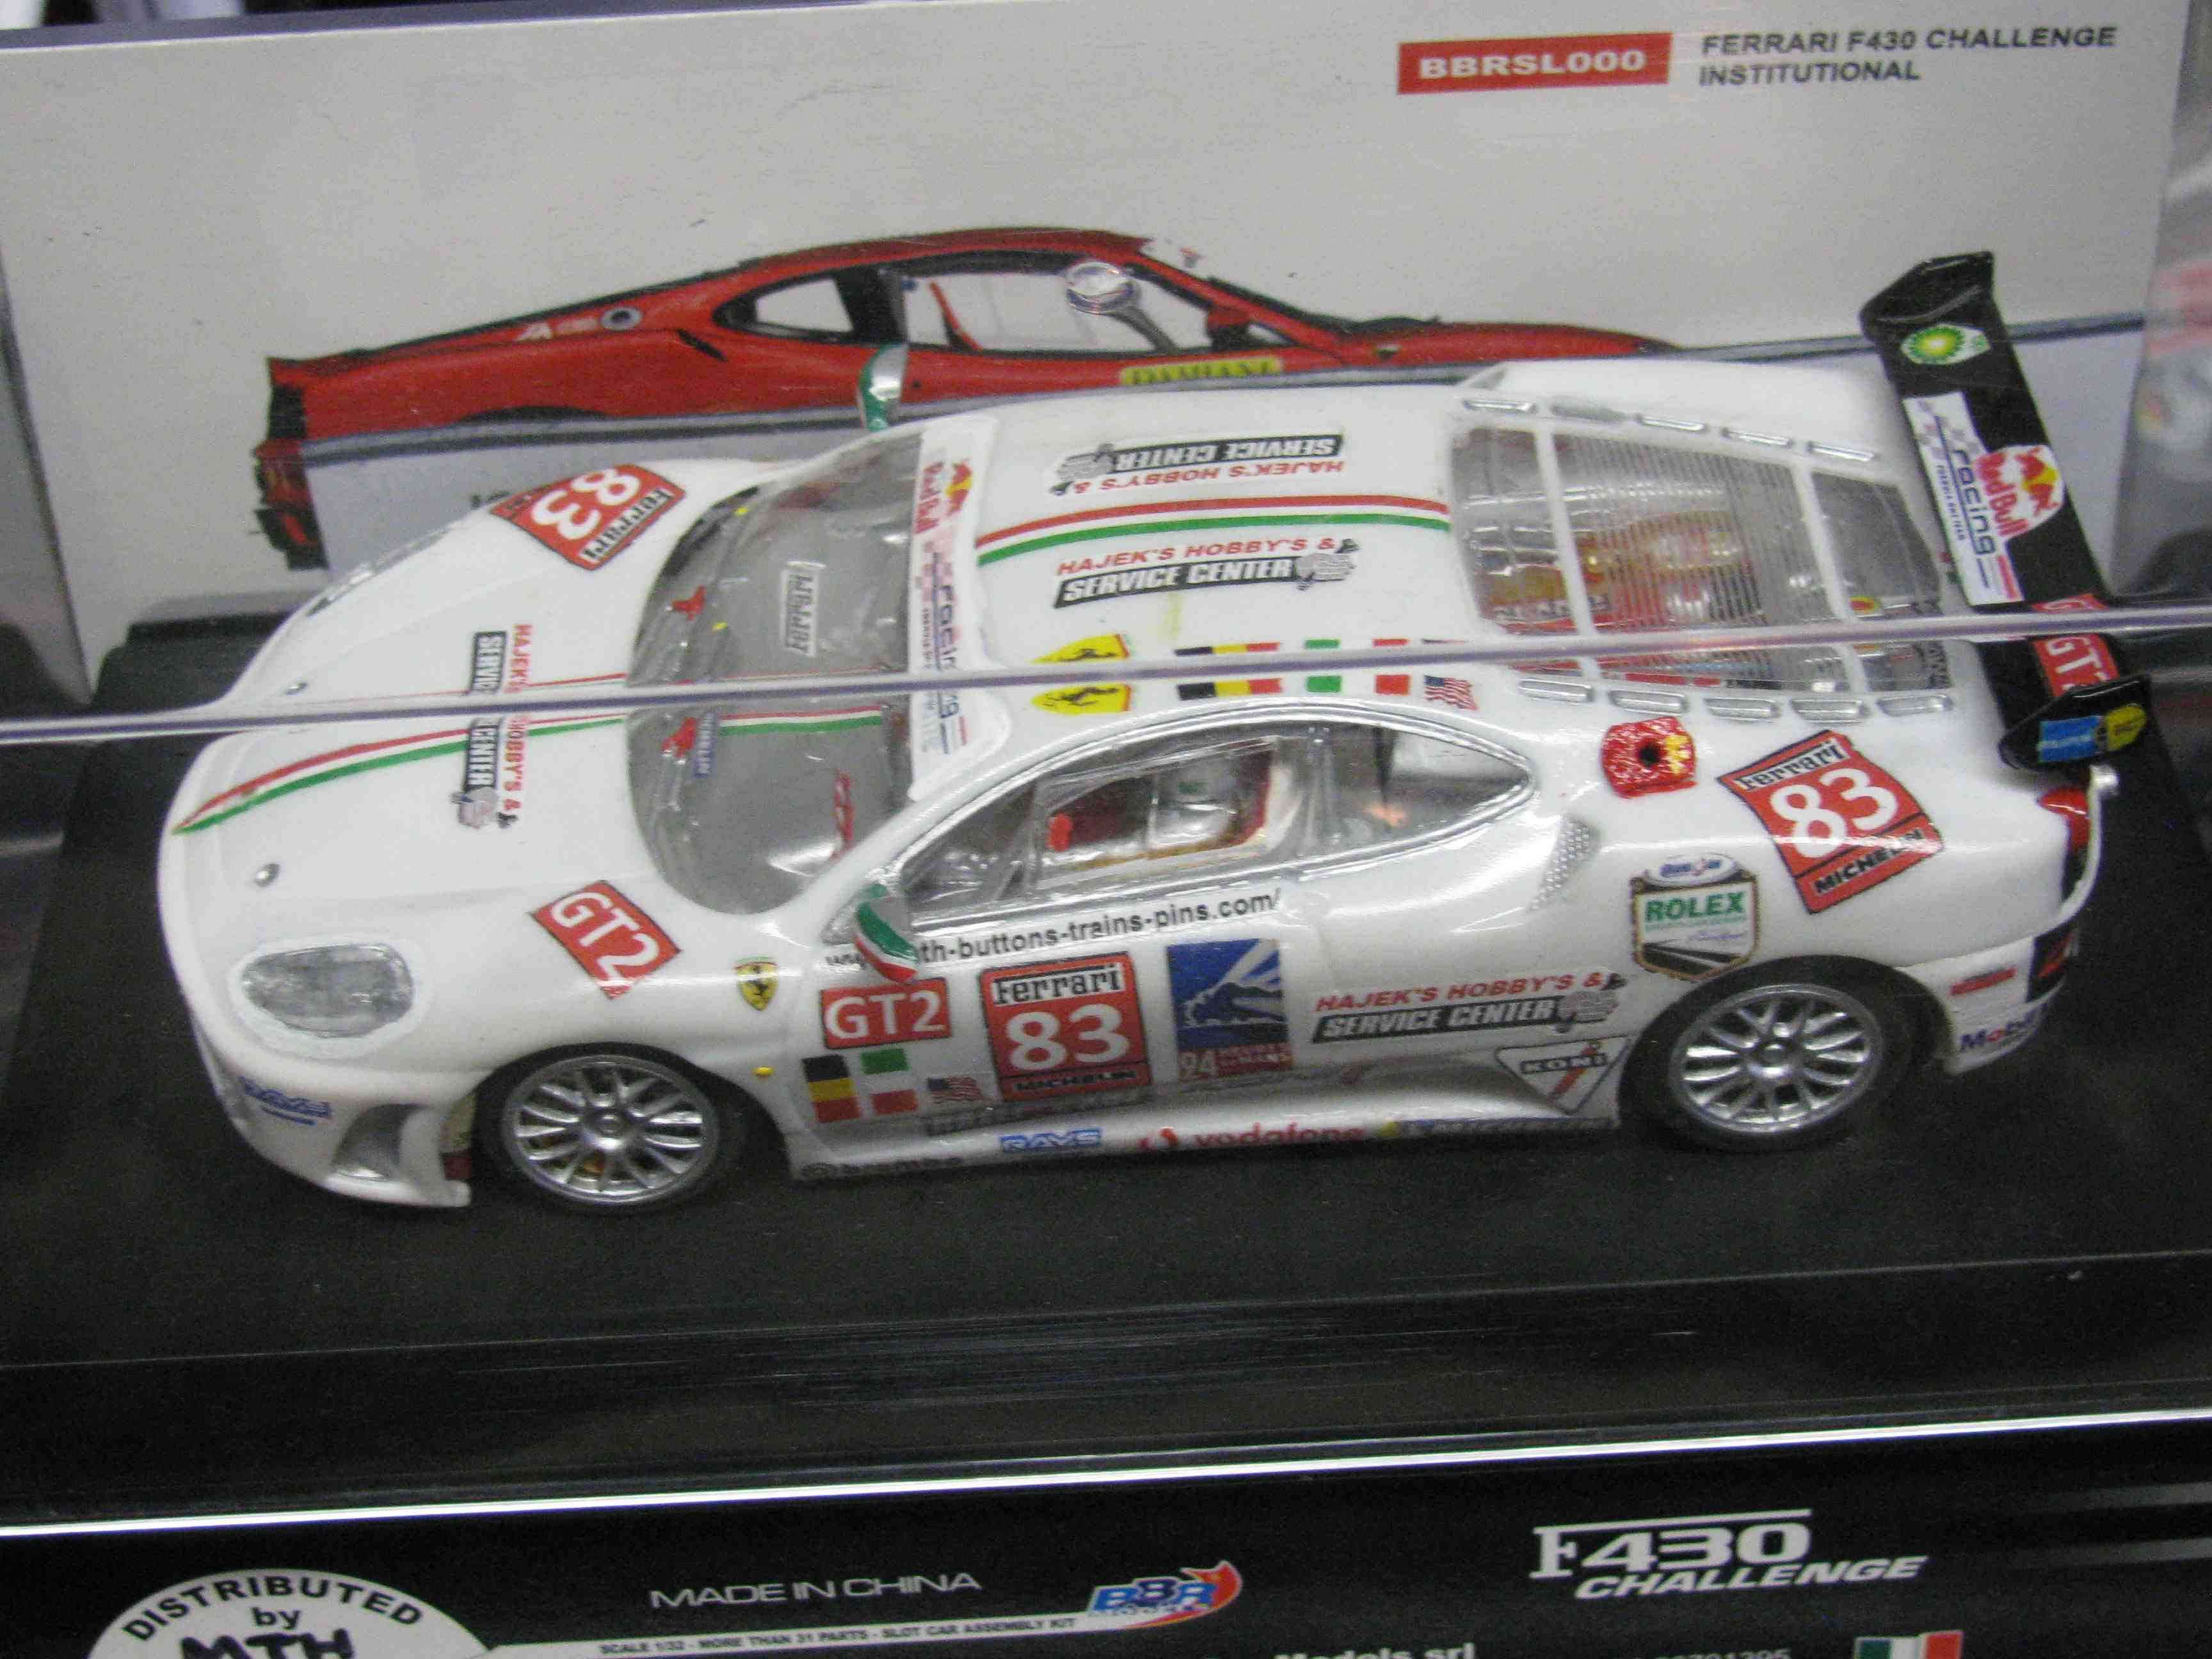 * SOLD * *SALE* Ferrari F430 Challenge Slot Car in Brilliant Bianca White, with a custom Decal Design – Car #83